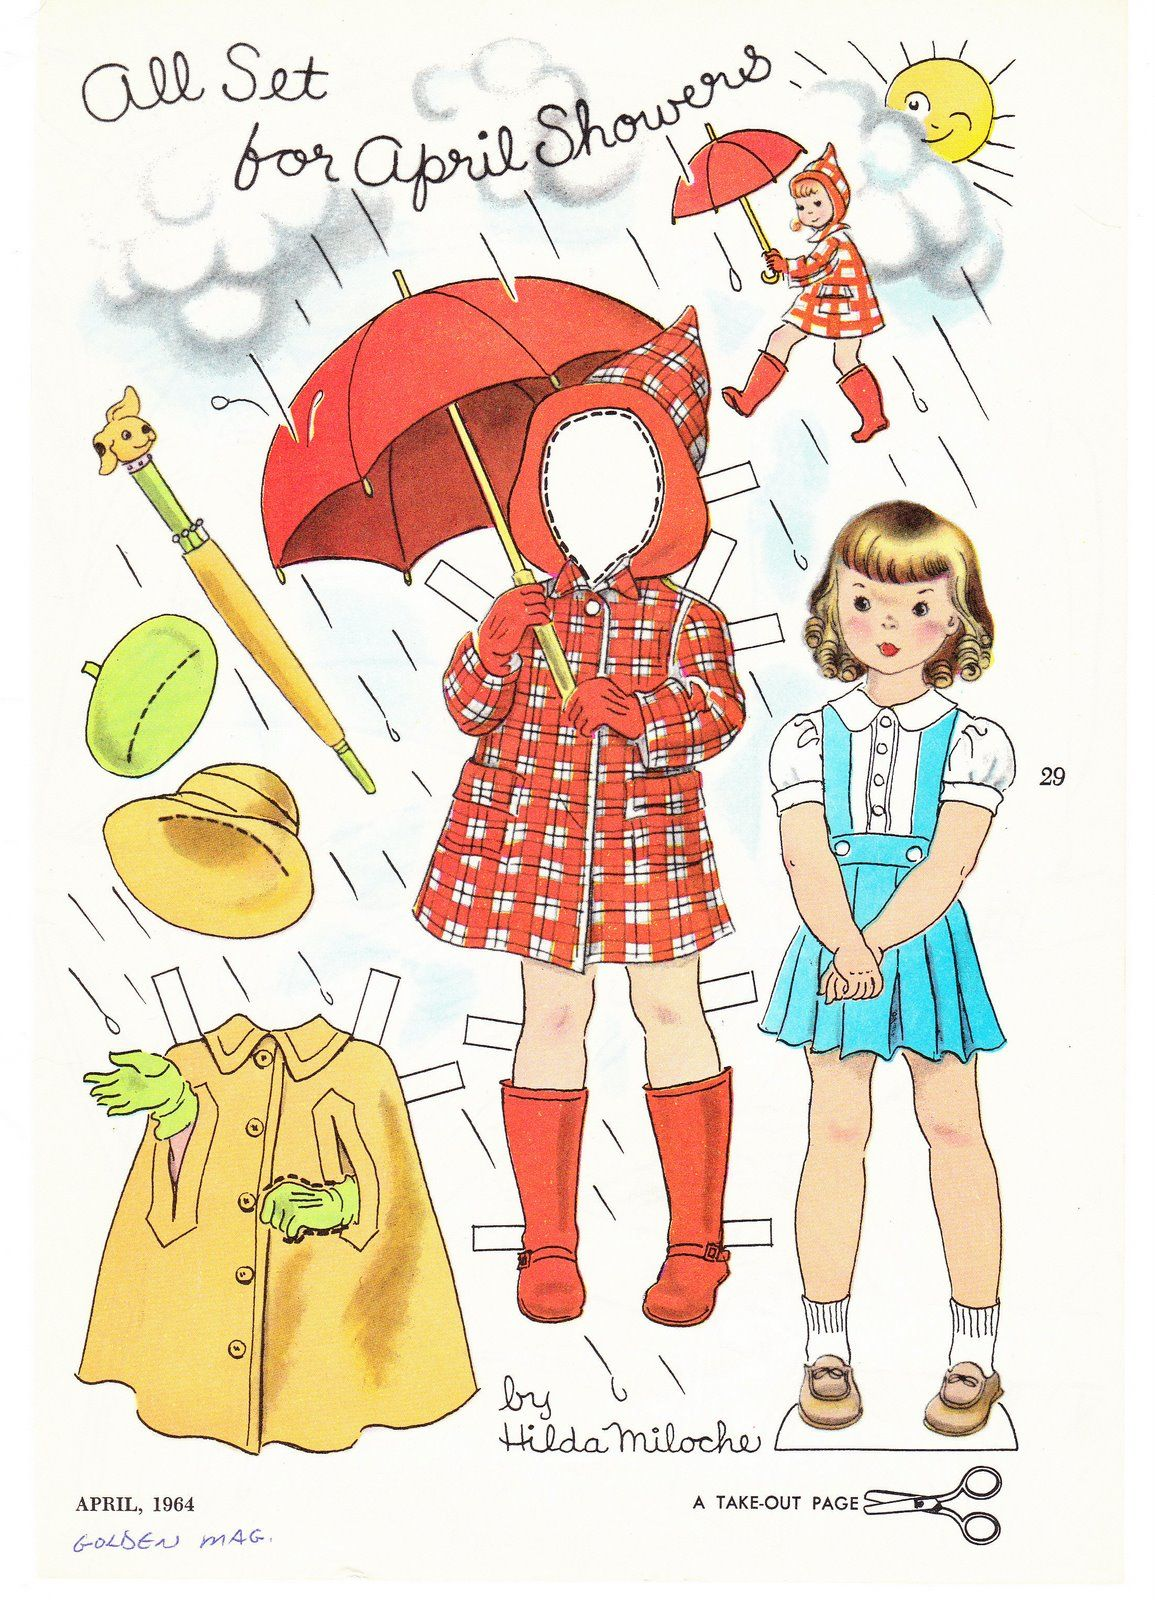 Golden Magazine - April Showers 1964 by Hilda Miloche